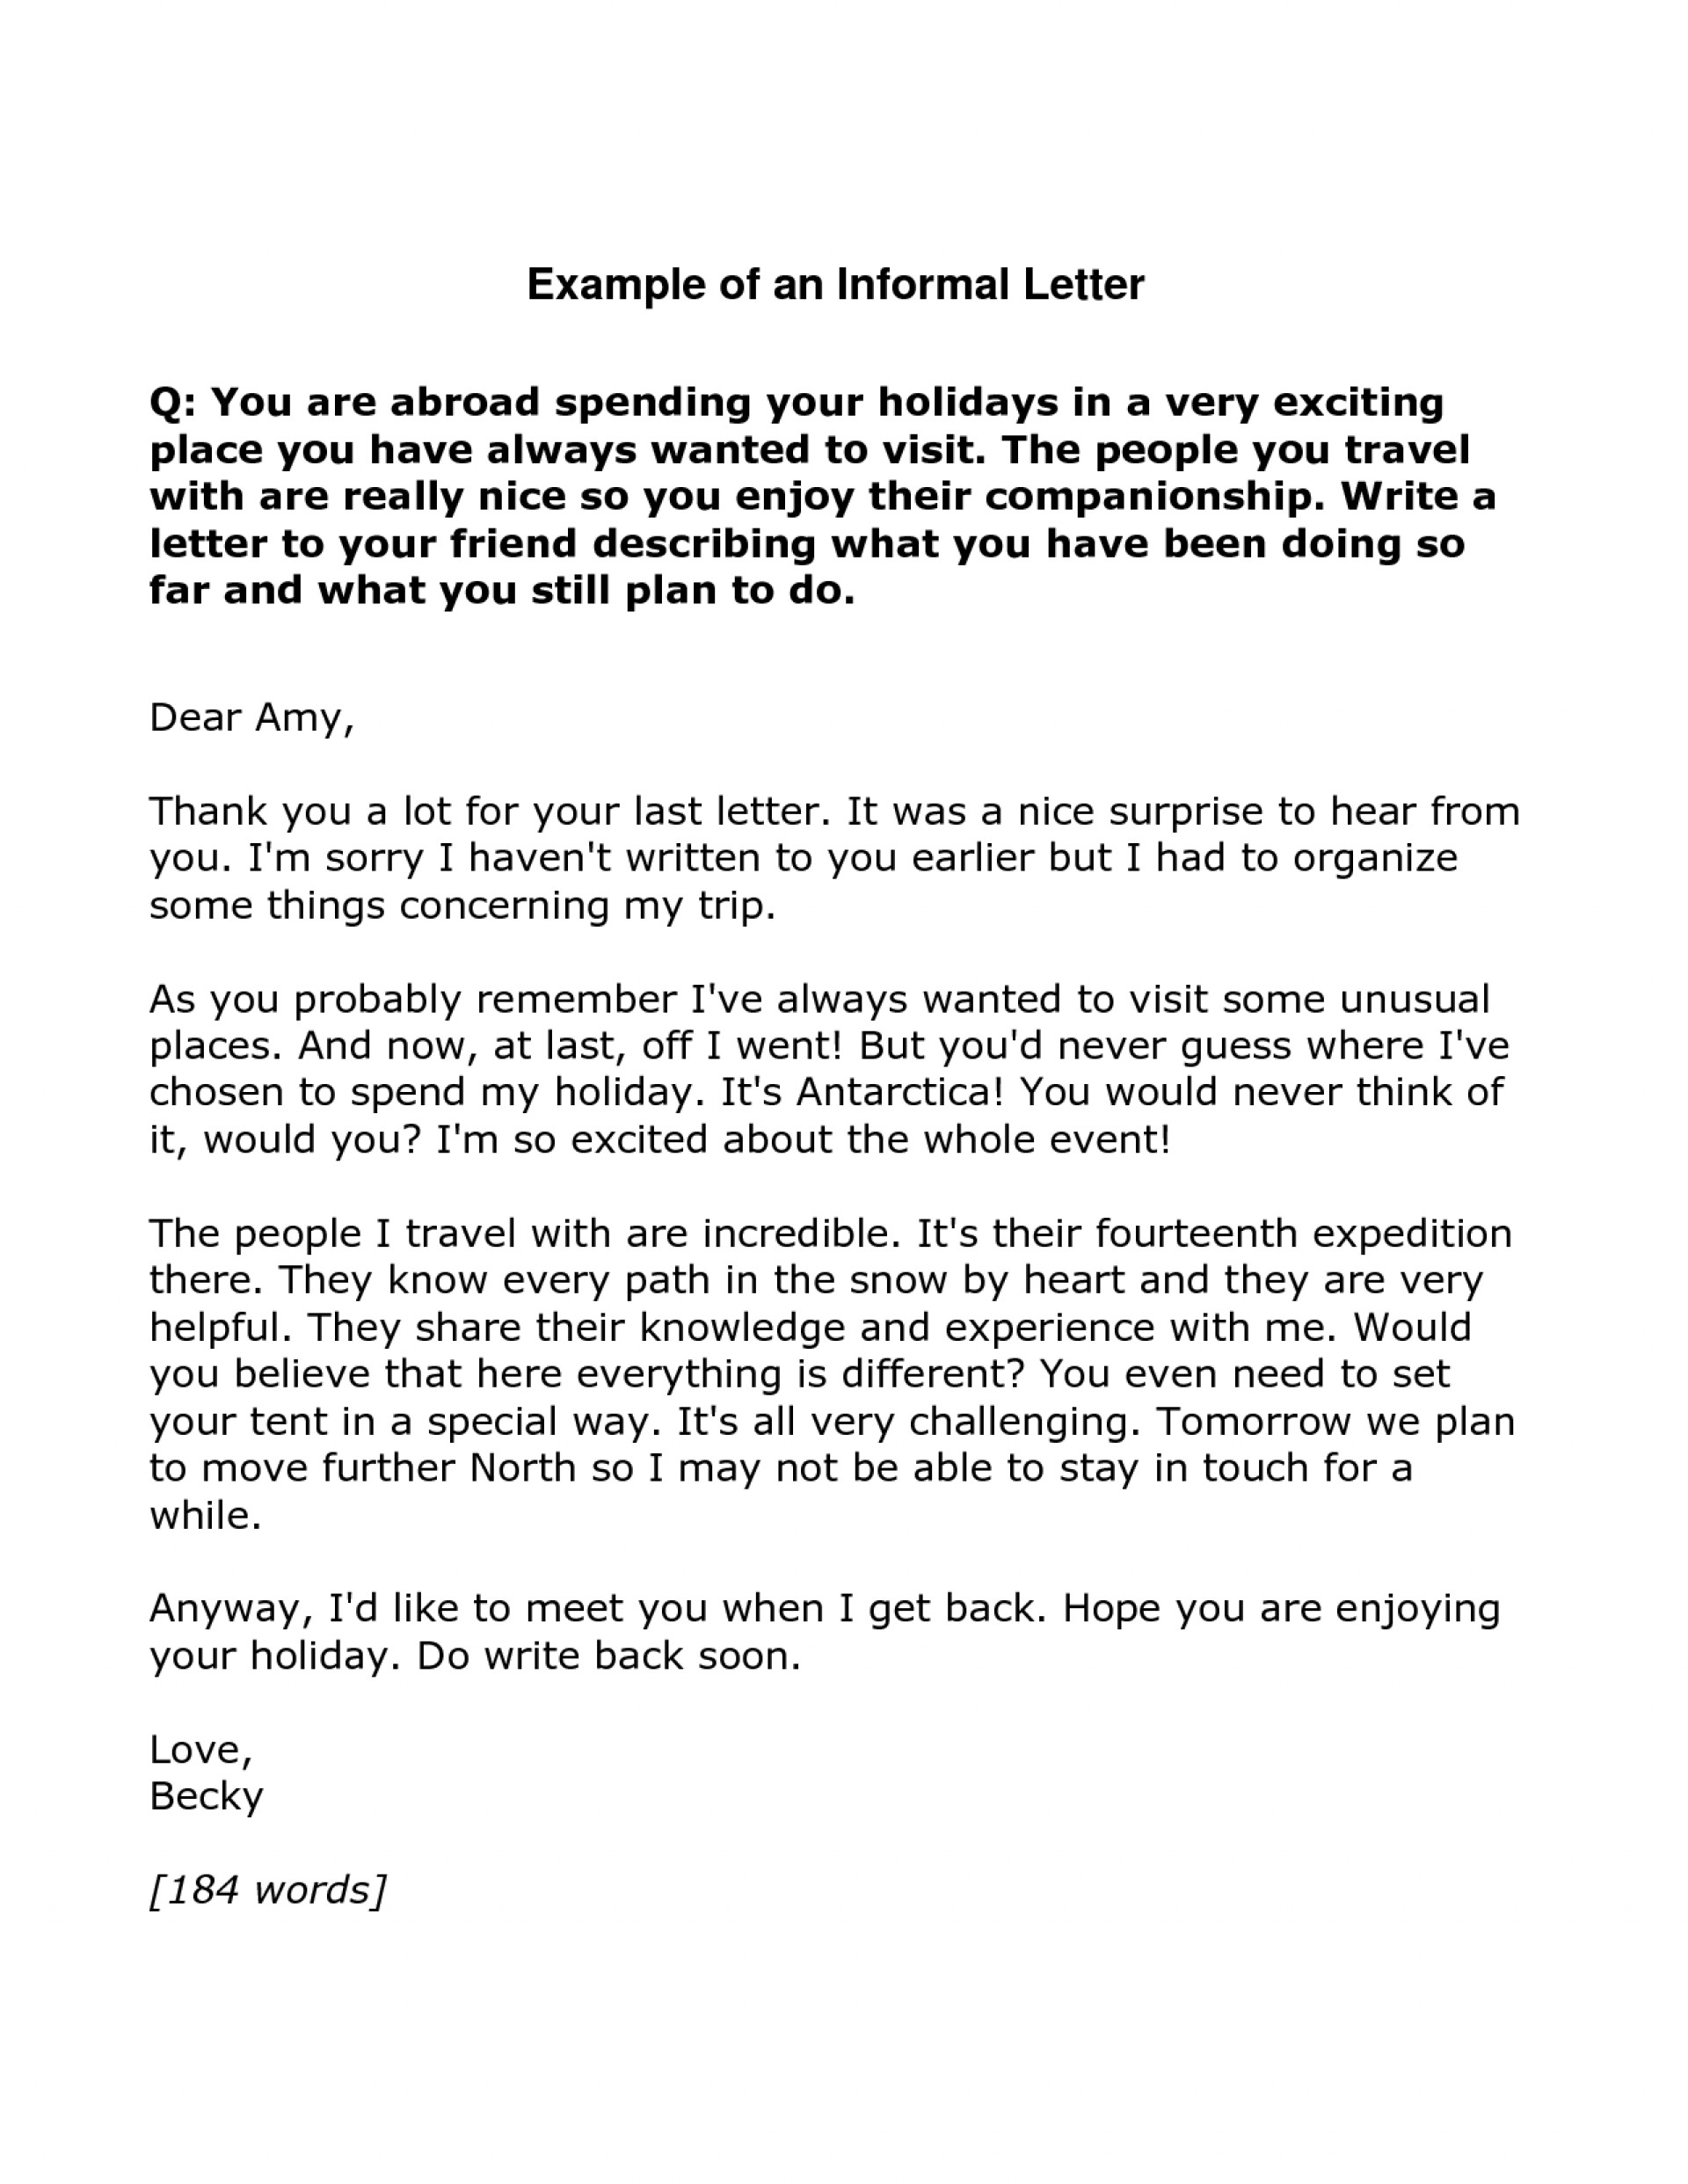 014 Lyric Essays Sample Informal Letter 219989 Awesome Essay Examples 1920